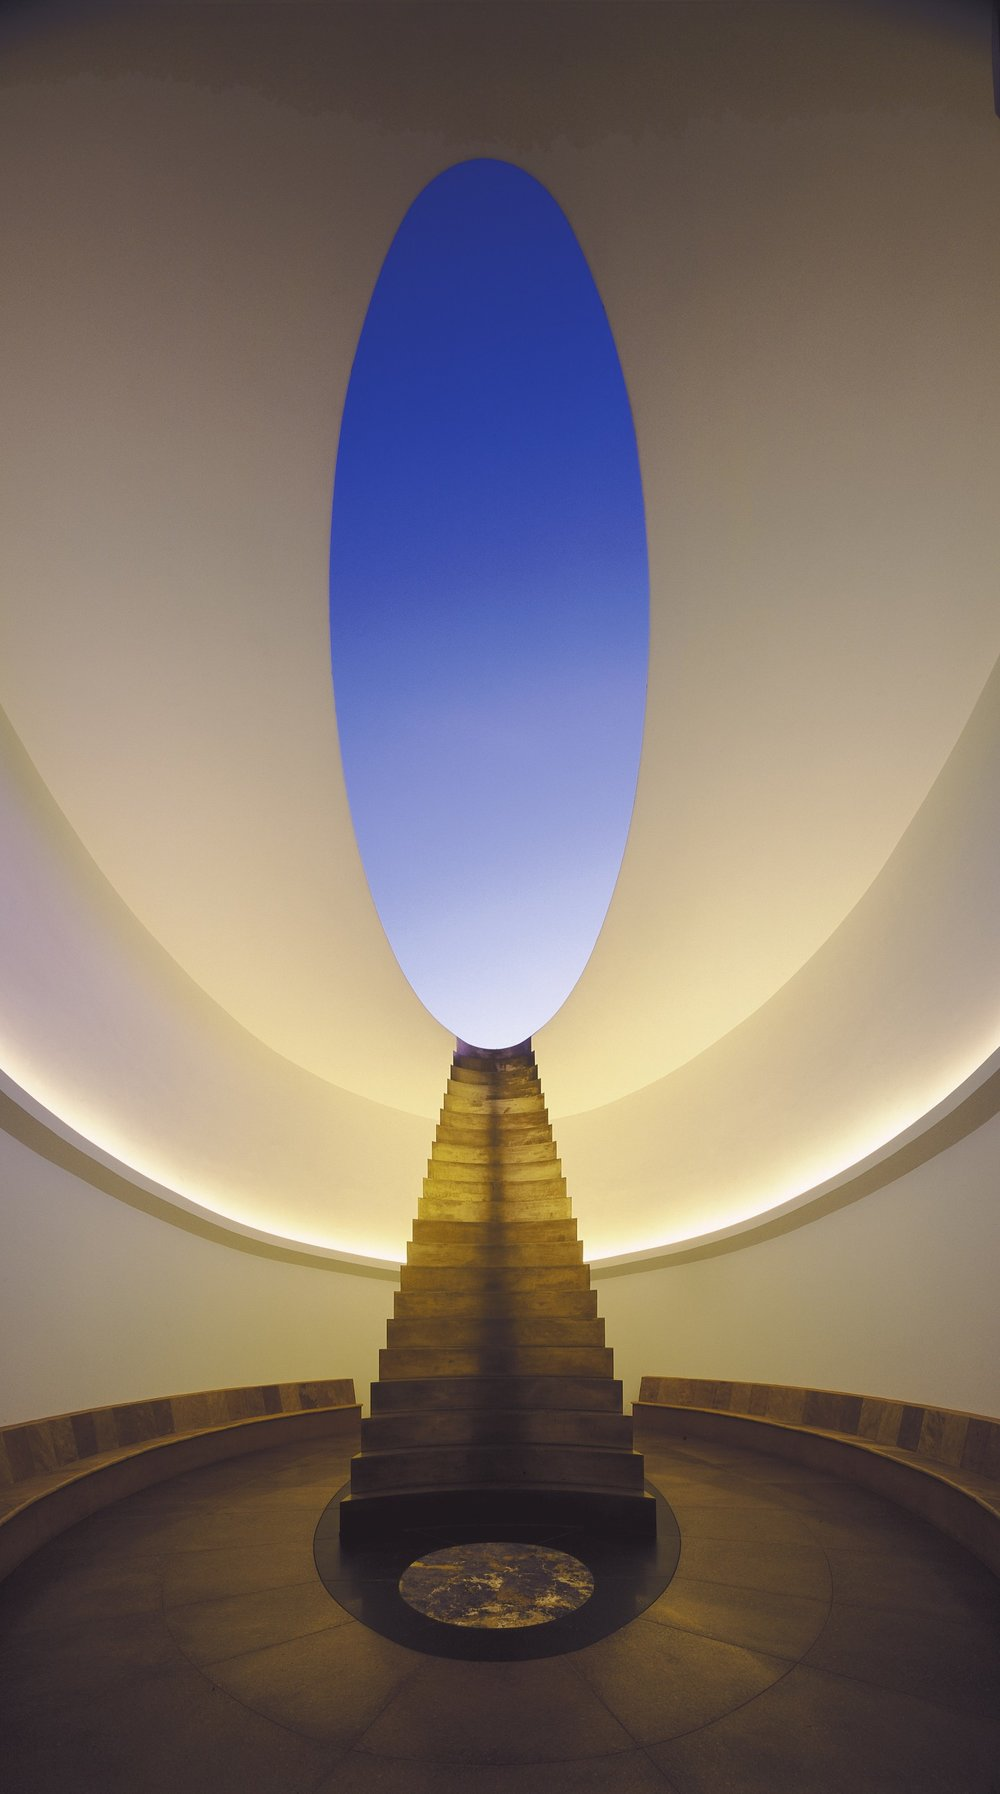 james-turrell-rodencrater6.jpg